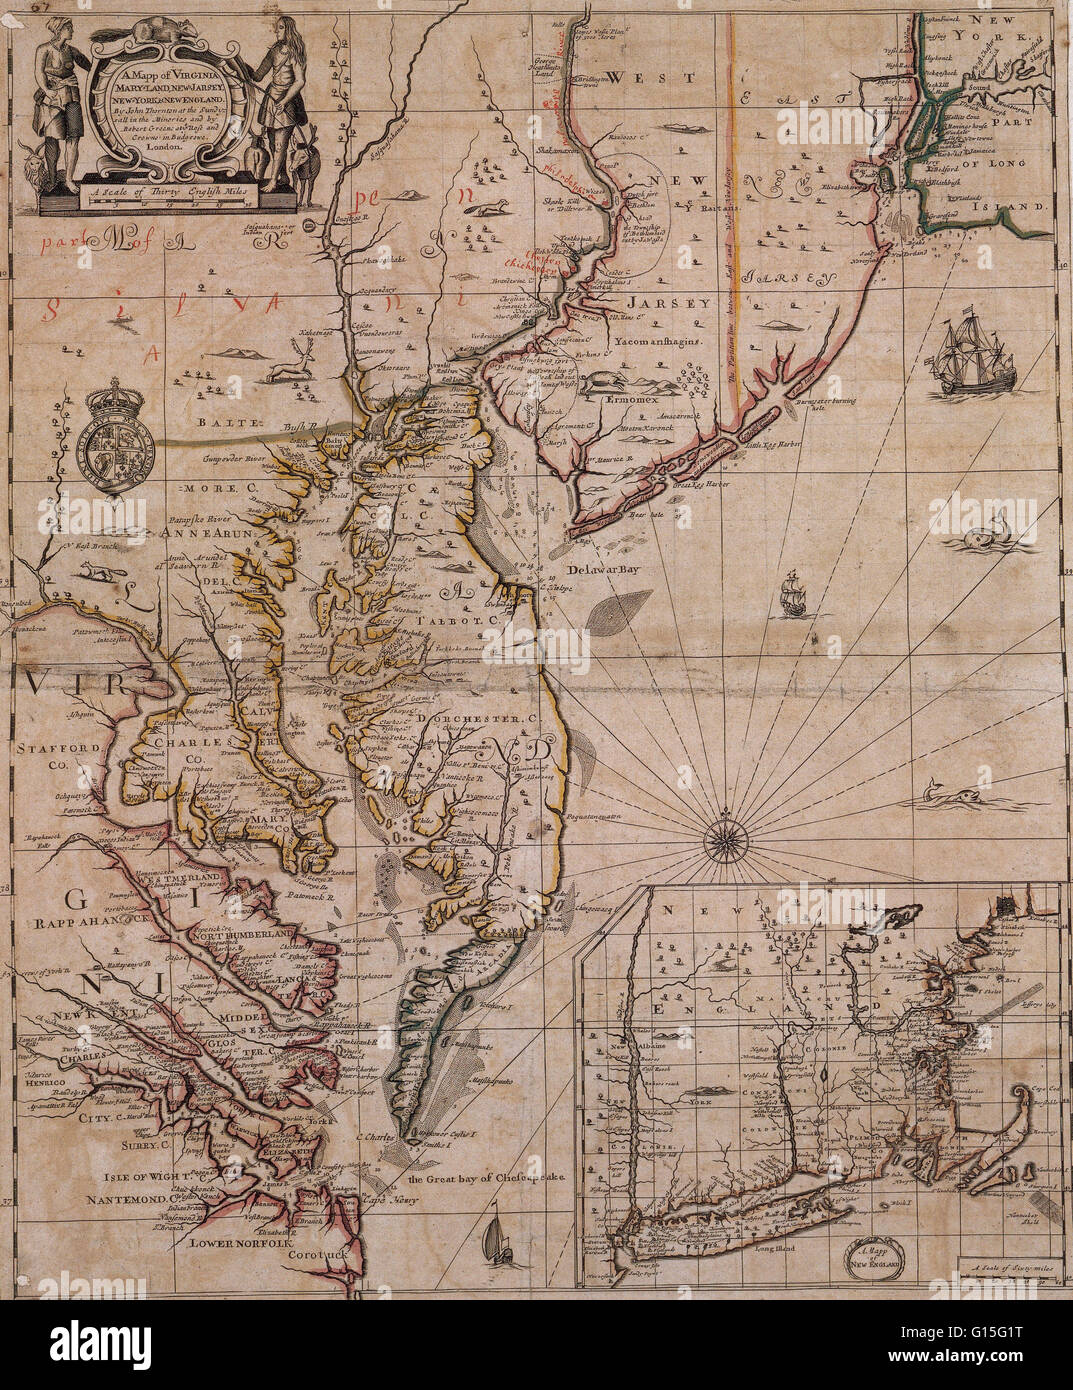 Map Of Virginia Maryland New Jersey New York And New England At